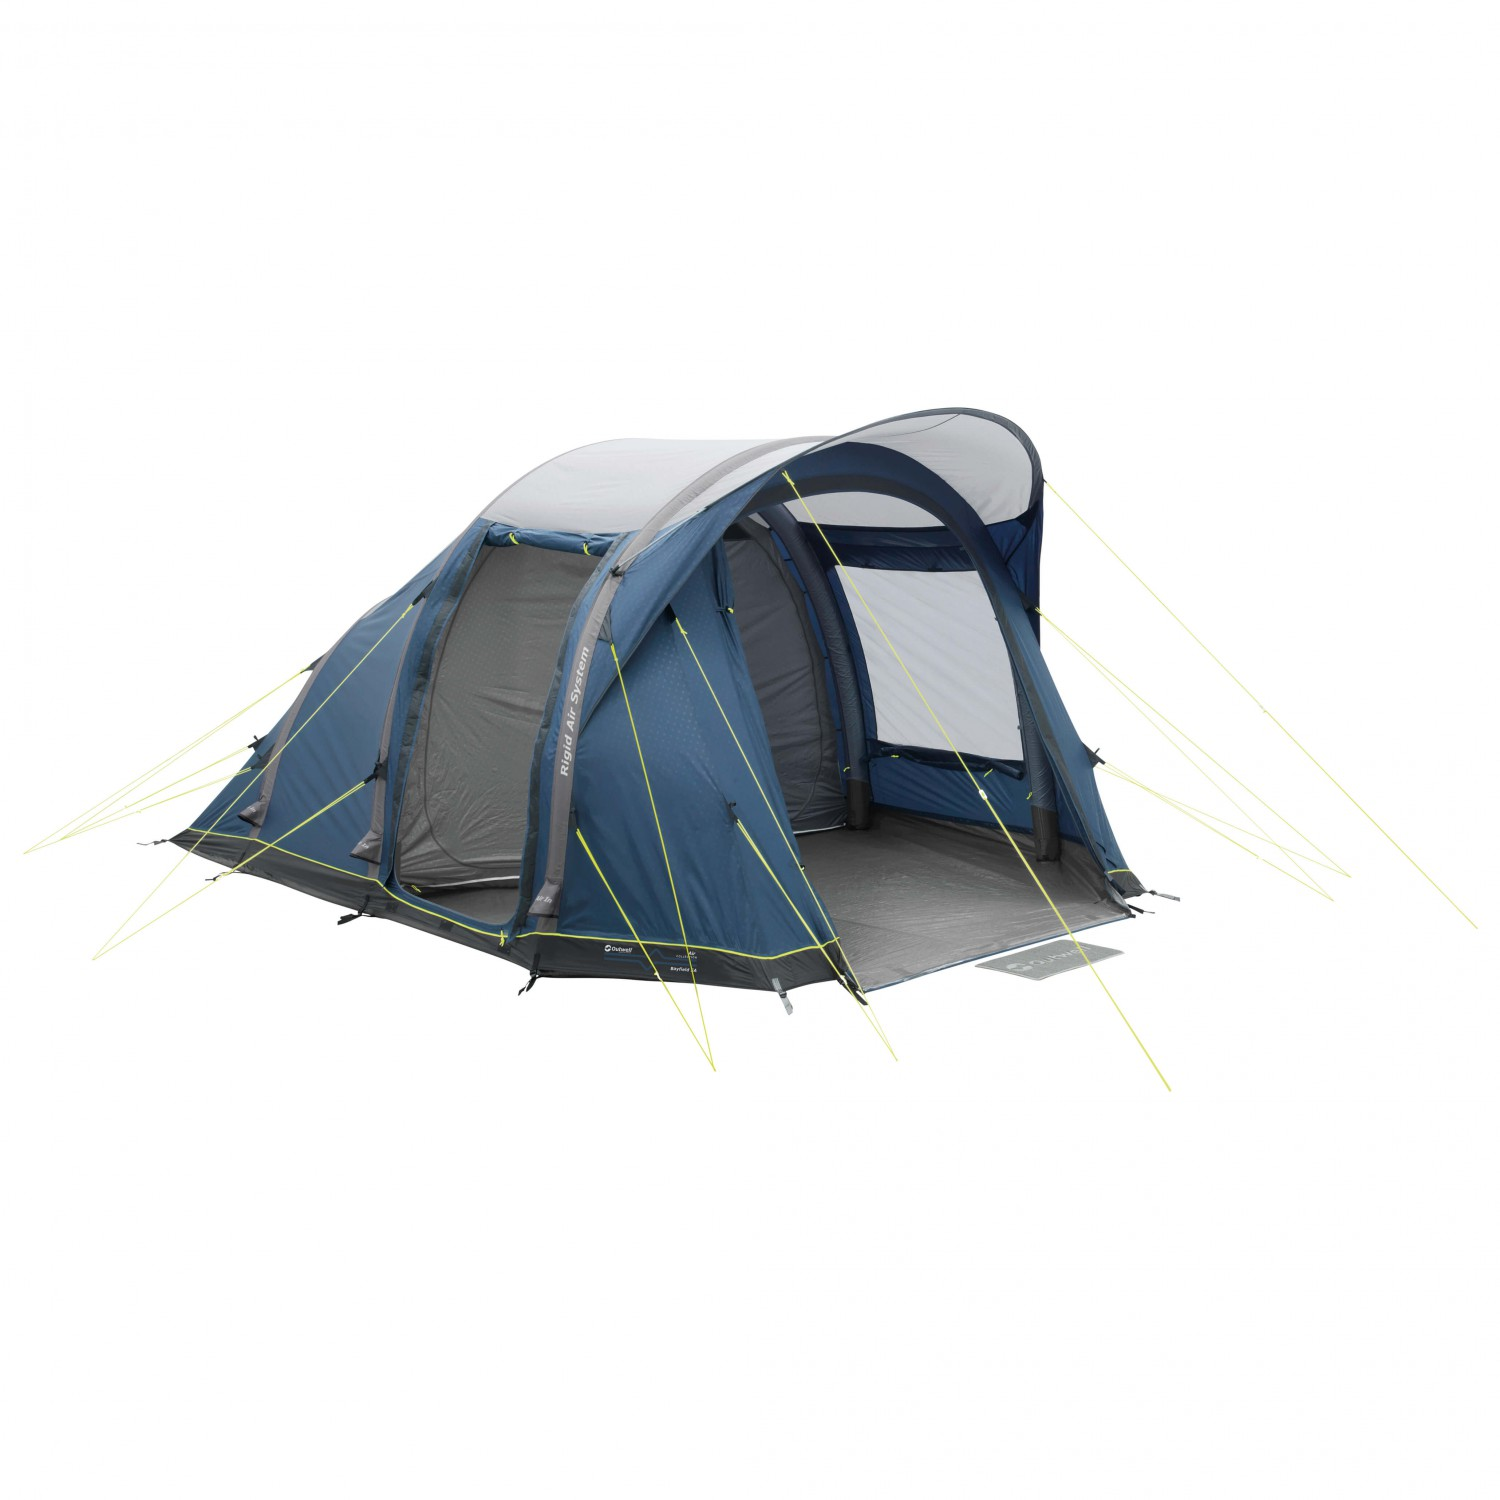 Outwell - Bayfield 5A - 4-8 man tent ...  sc 1 st  Alpinetrek & Outwell Bayfield 5A - 4-8 Man Tent | Free UK Delivery | Alpinetrek ...